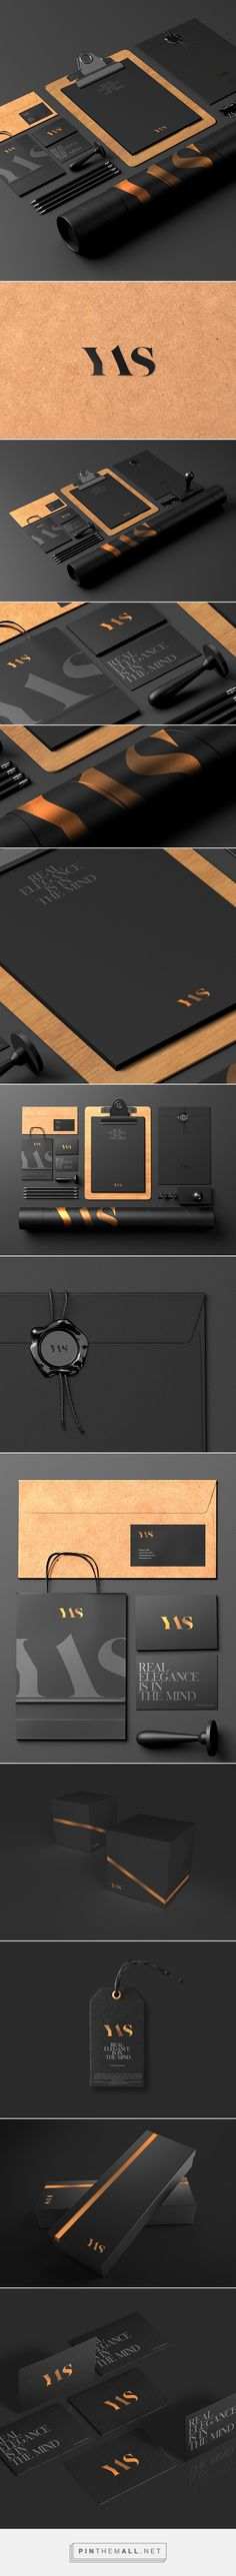 YAS - popular accessories for men on Behance by Sebastian Bednarek curated by Packaging Diva PD. This is gorgeous identity packaging branding for-men.